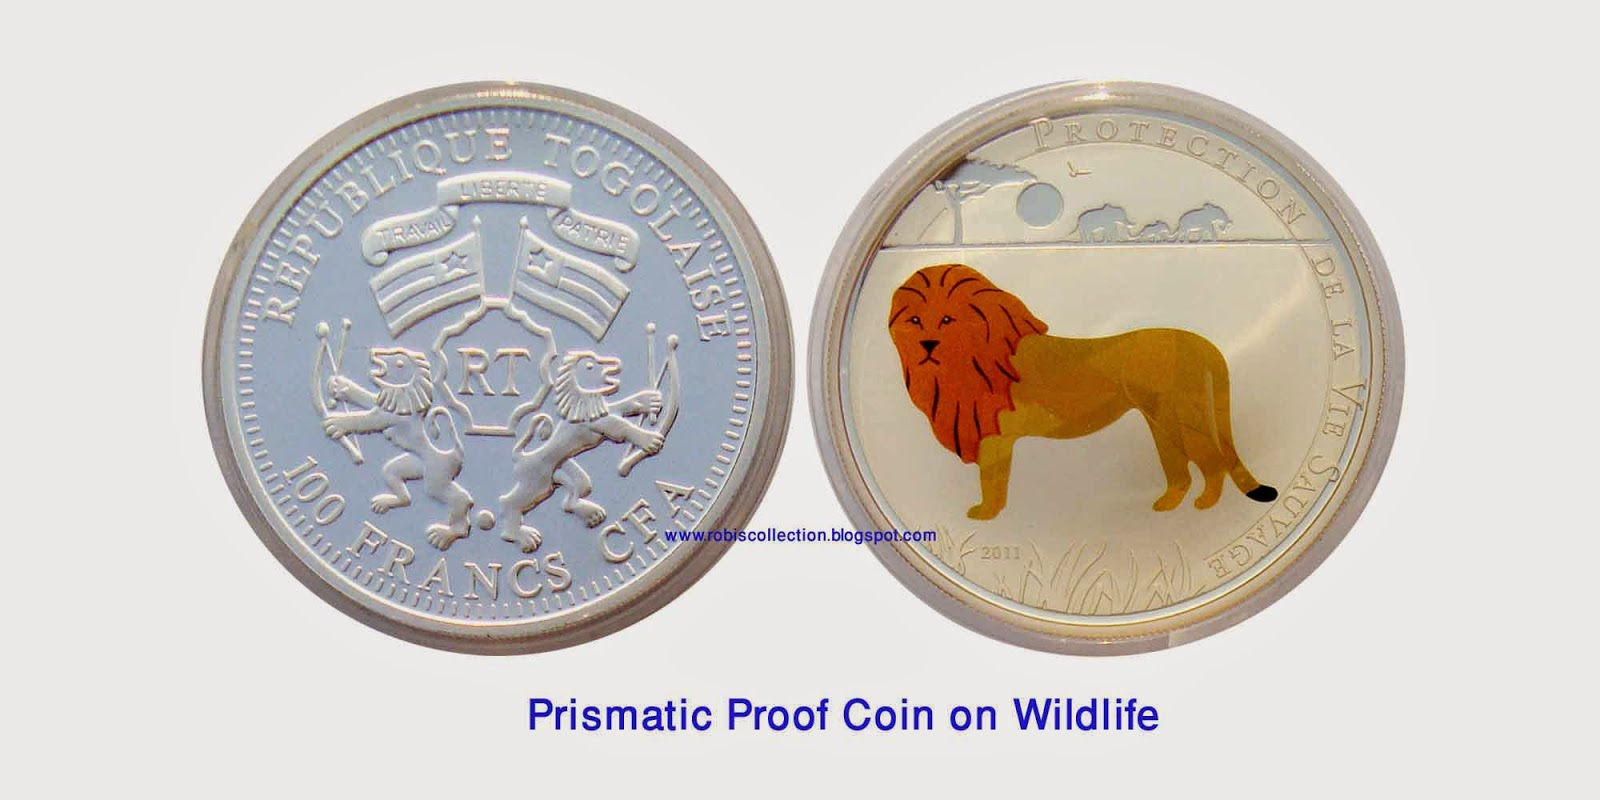 these 100 francs coins from the african nation of togo incorporate a prismatic technology that causes the colors to change and sparkle as the coin is